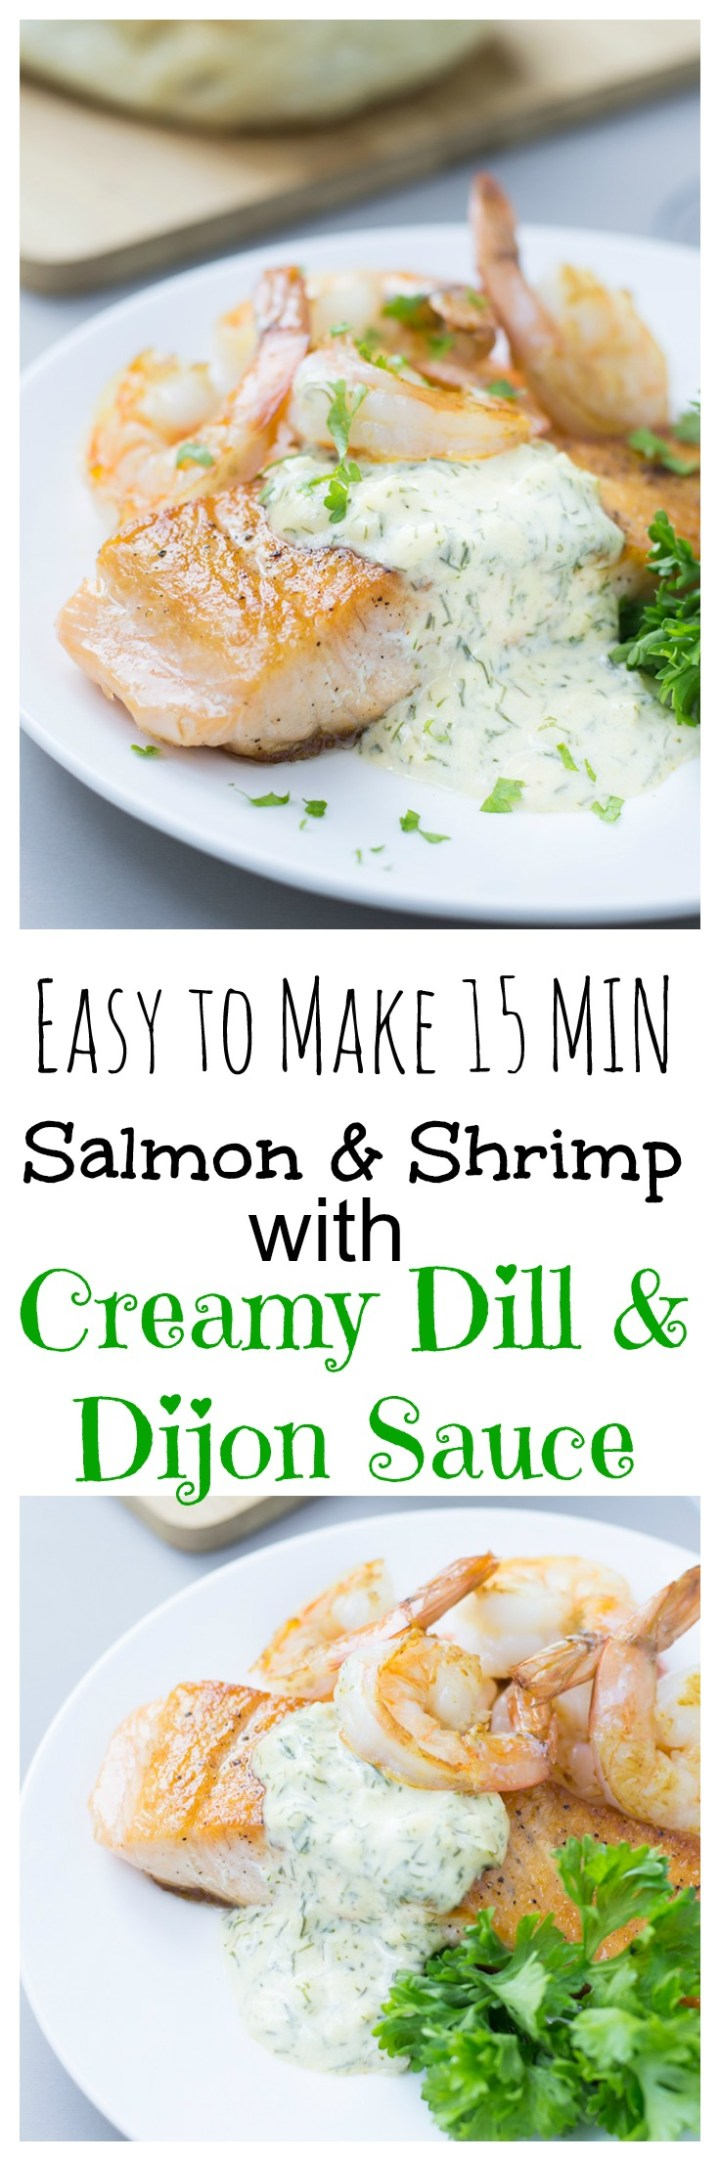 Seared Salmon and Shrimp with Creamy Dill and Dijon Sauce